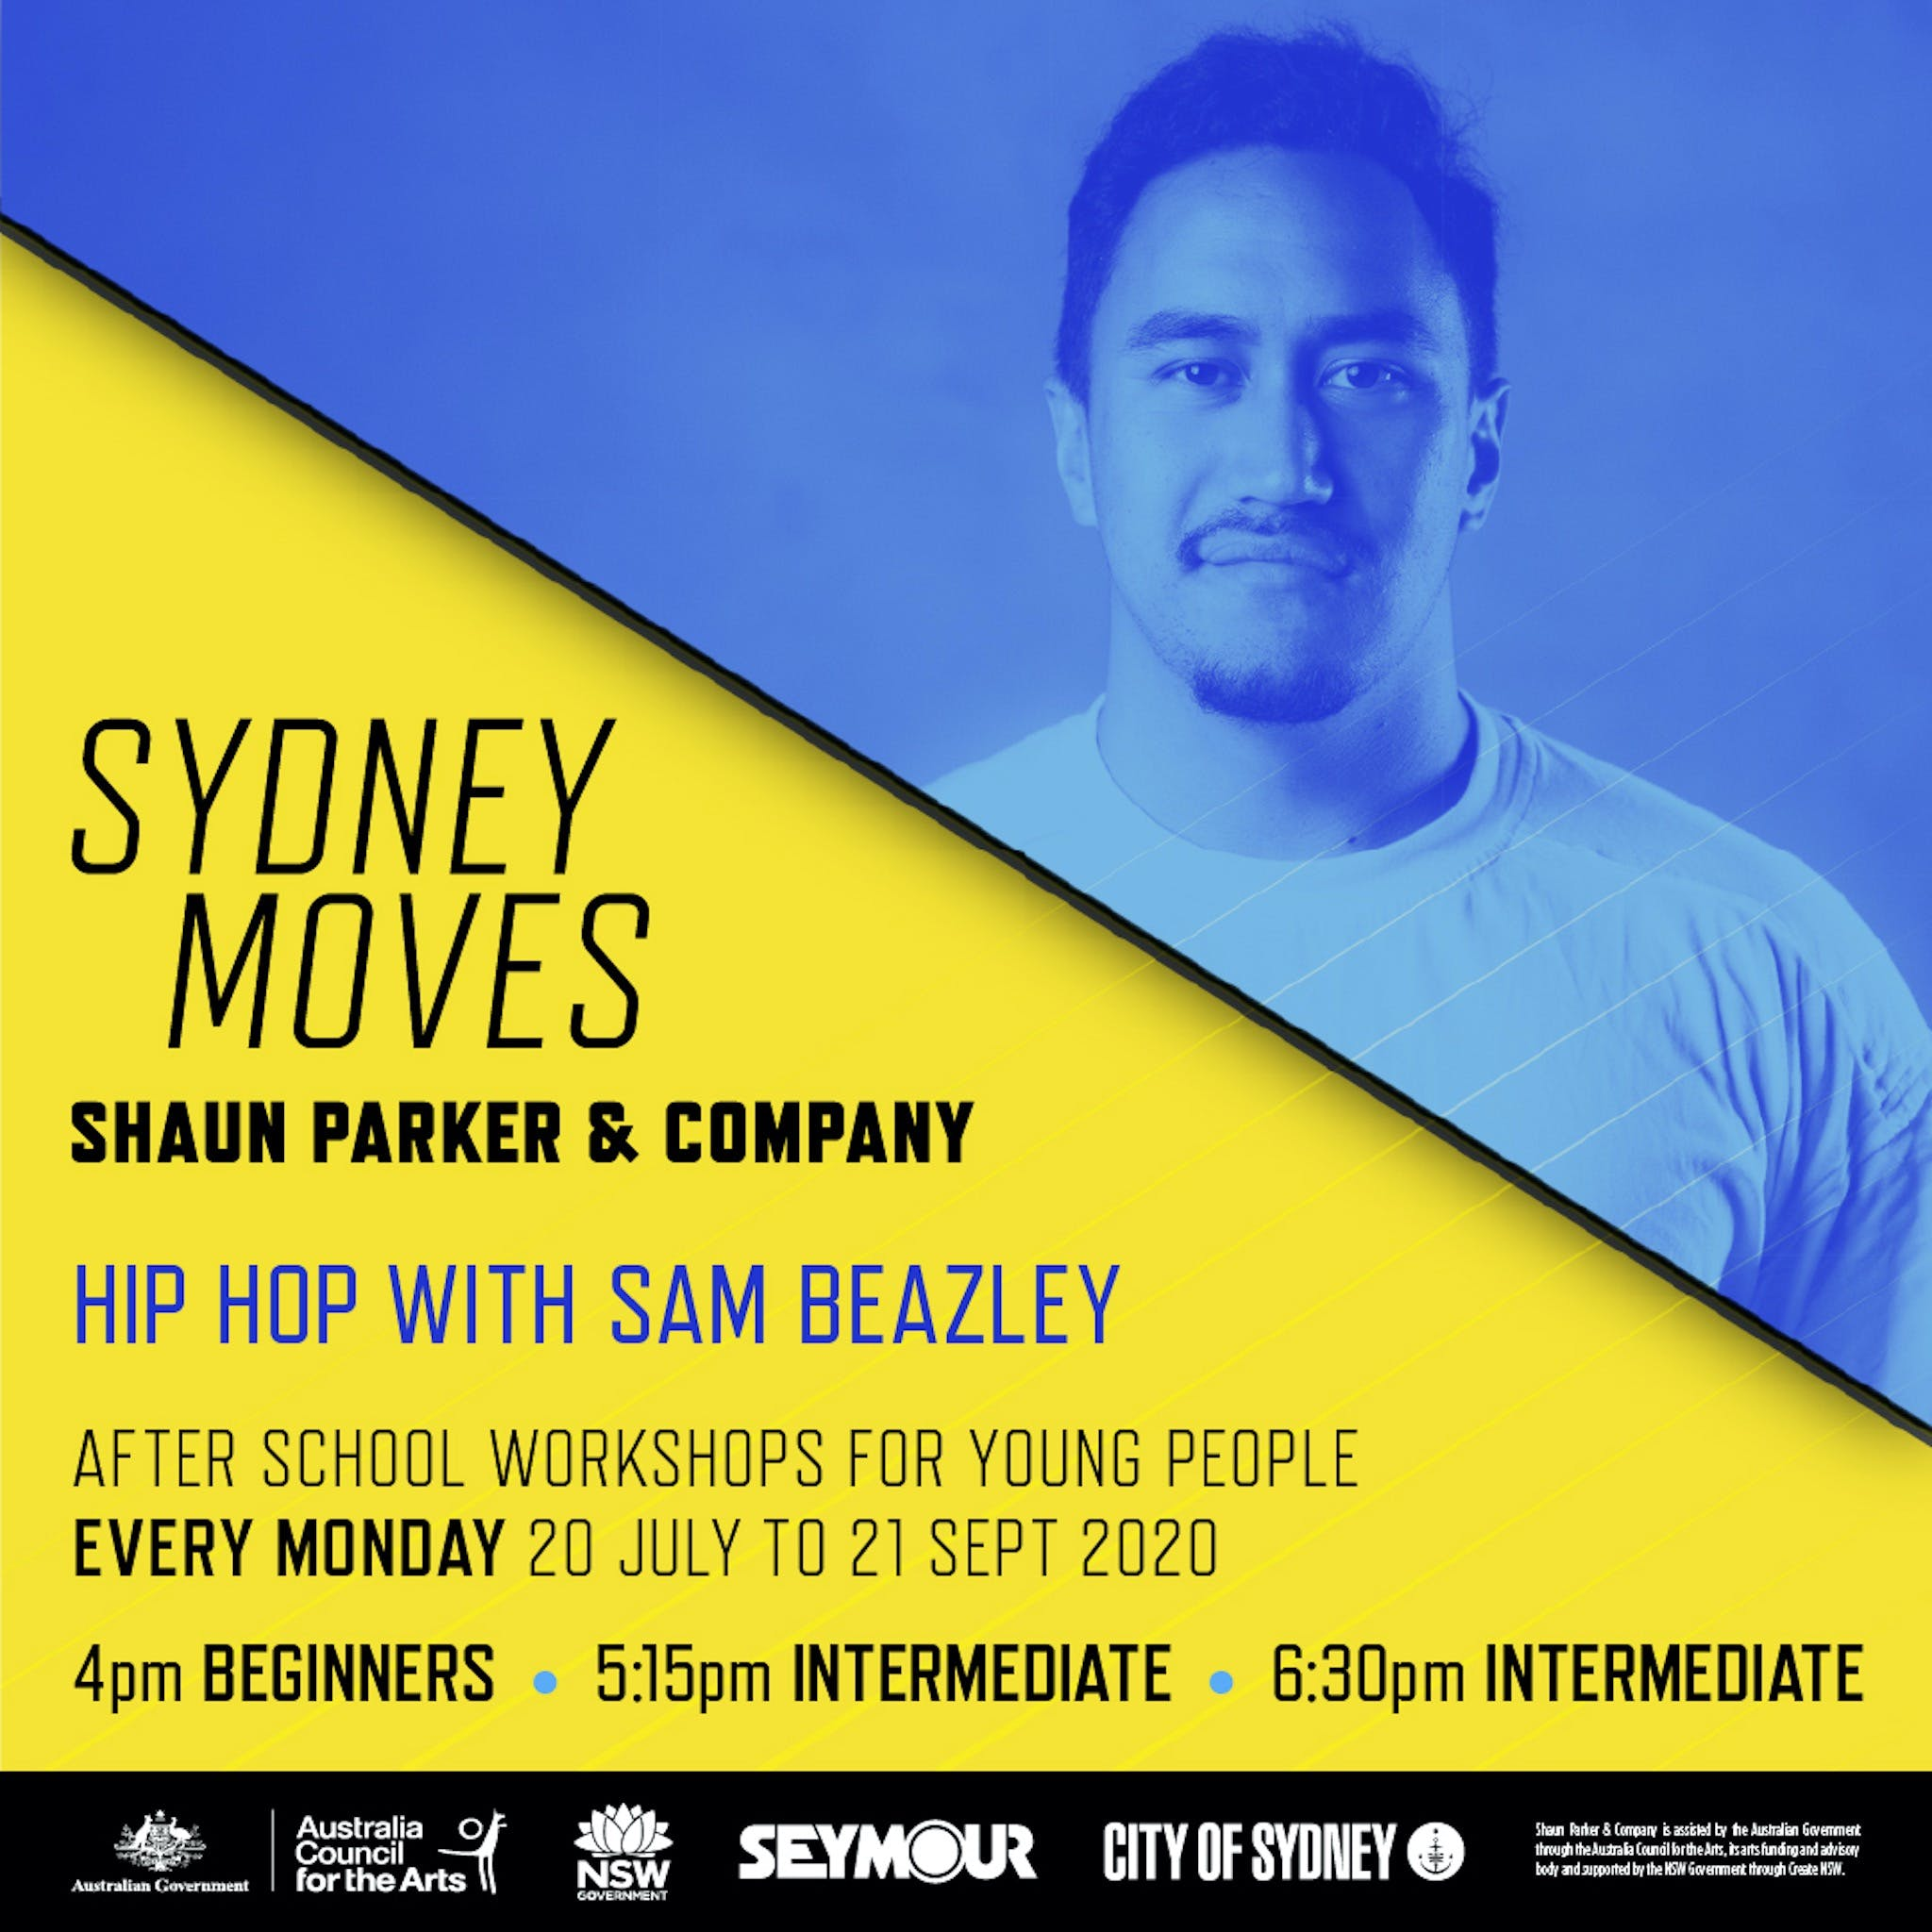 Sydney Moves - All Ages Intermediate Hip Hop with Sam Beazley - VIC Tourism